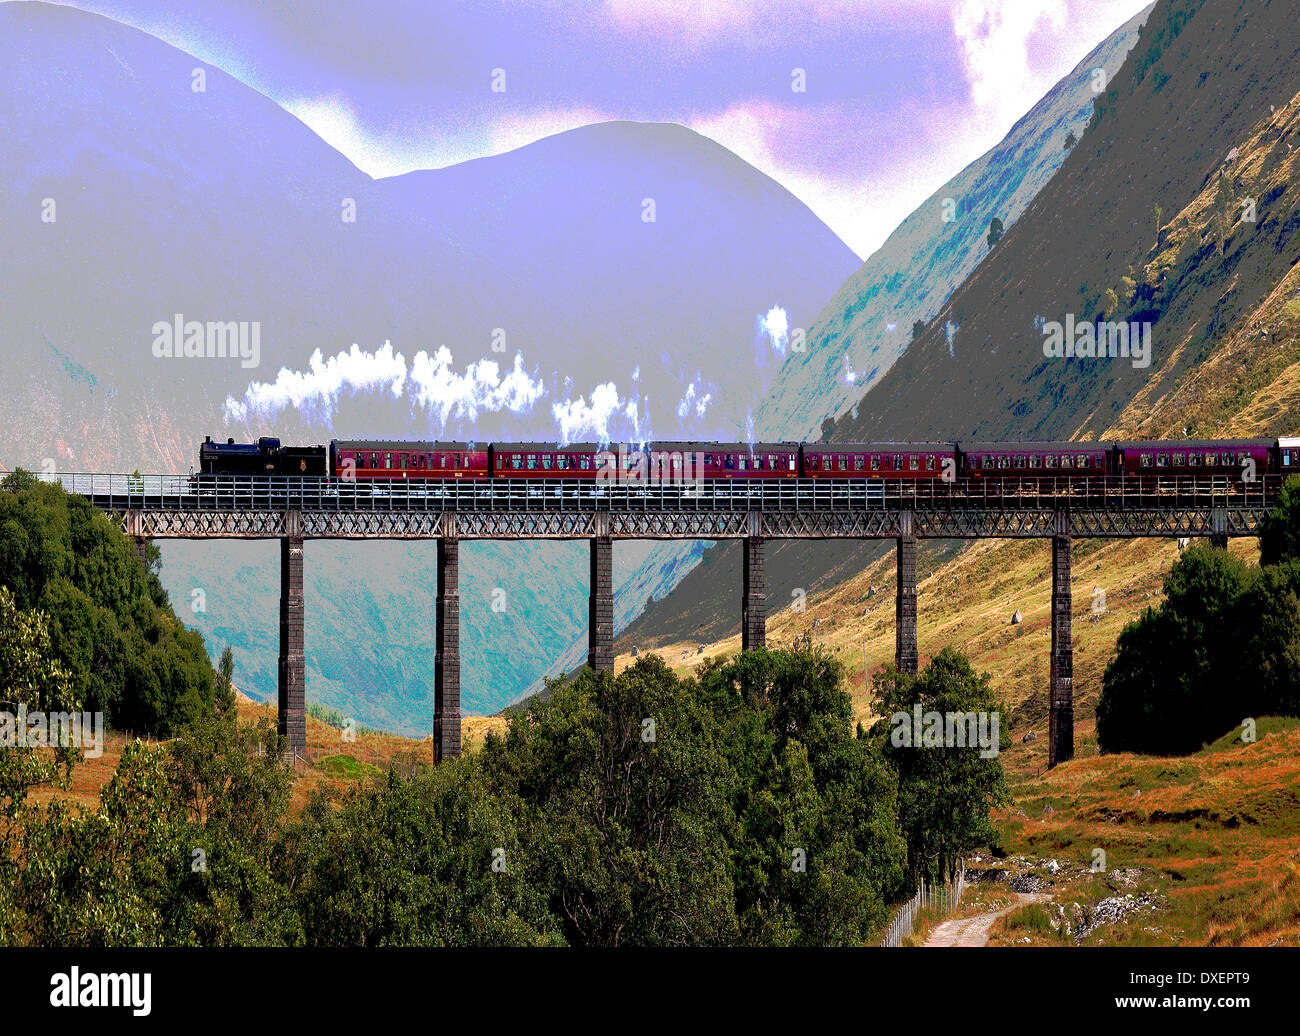 Abstract Art, Steam Train crossing Auch Viaduct, west Highlands. - Stock Image